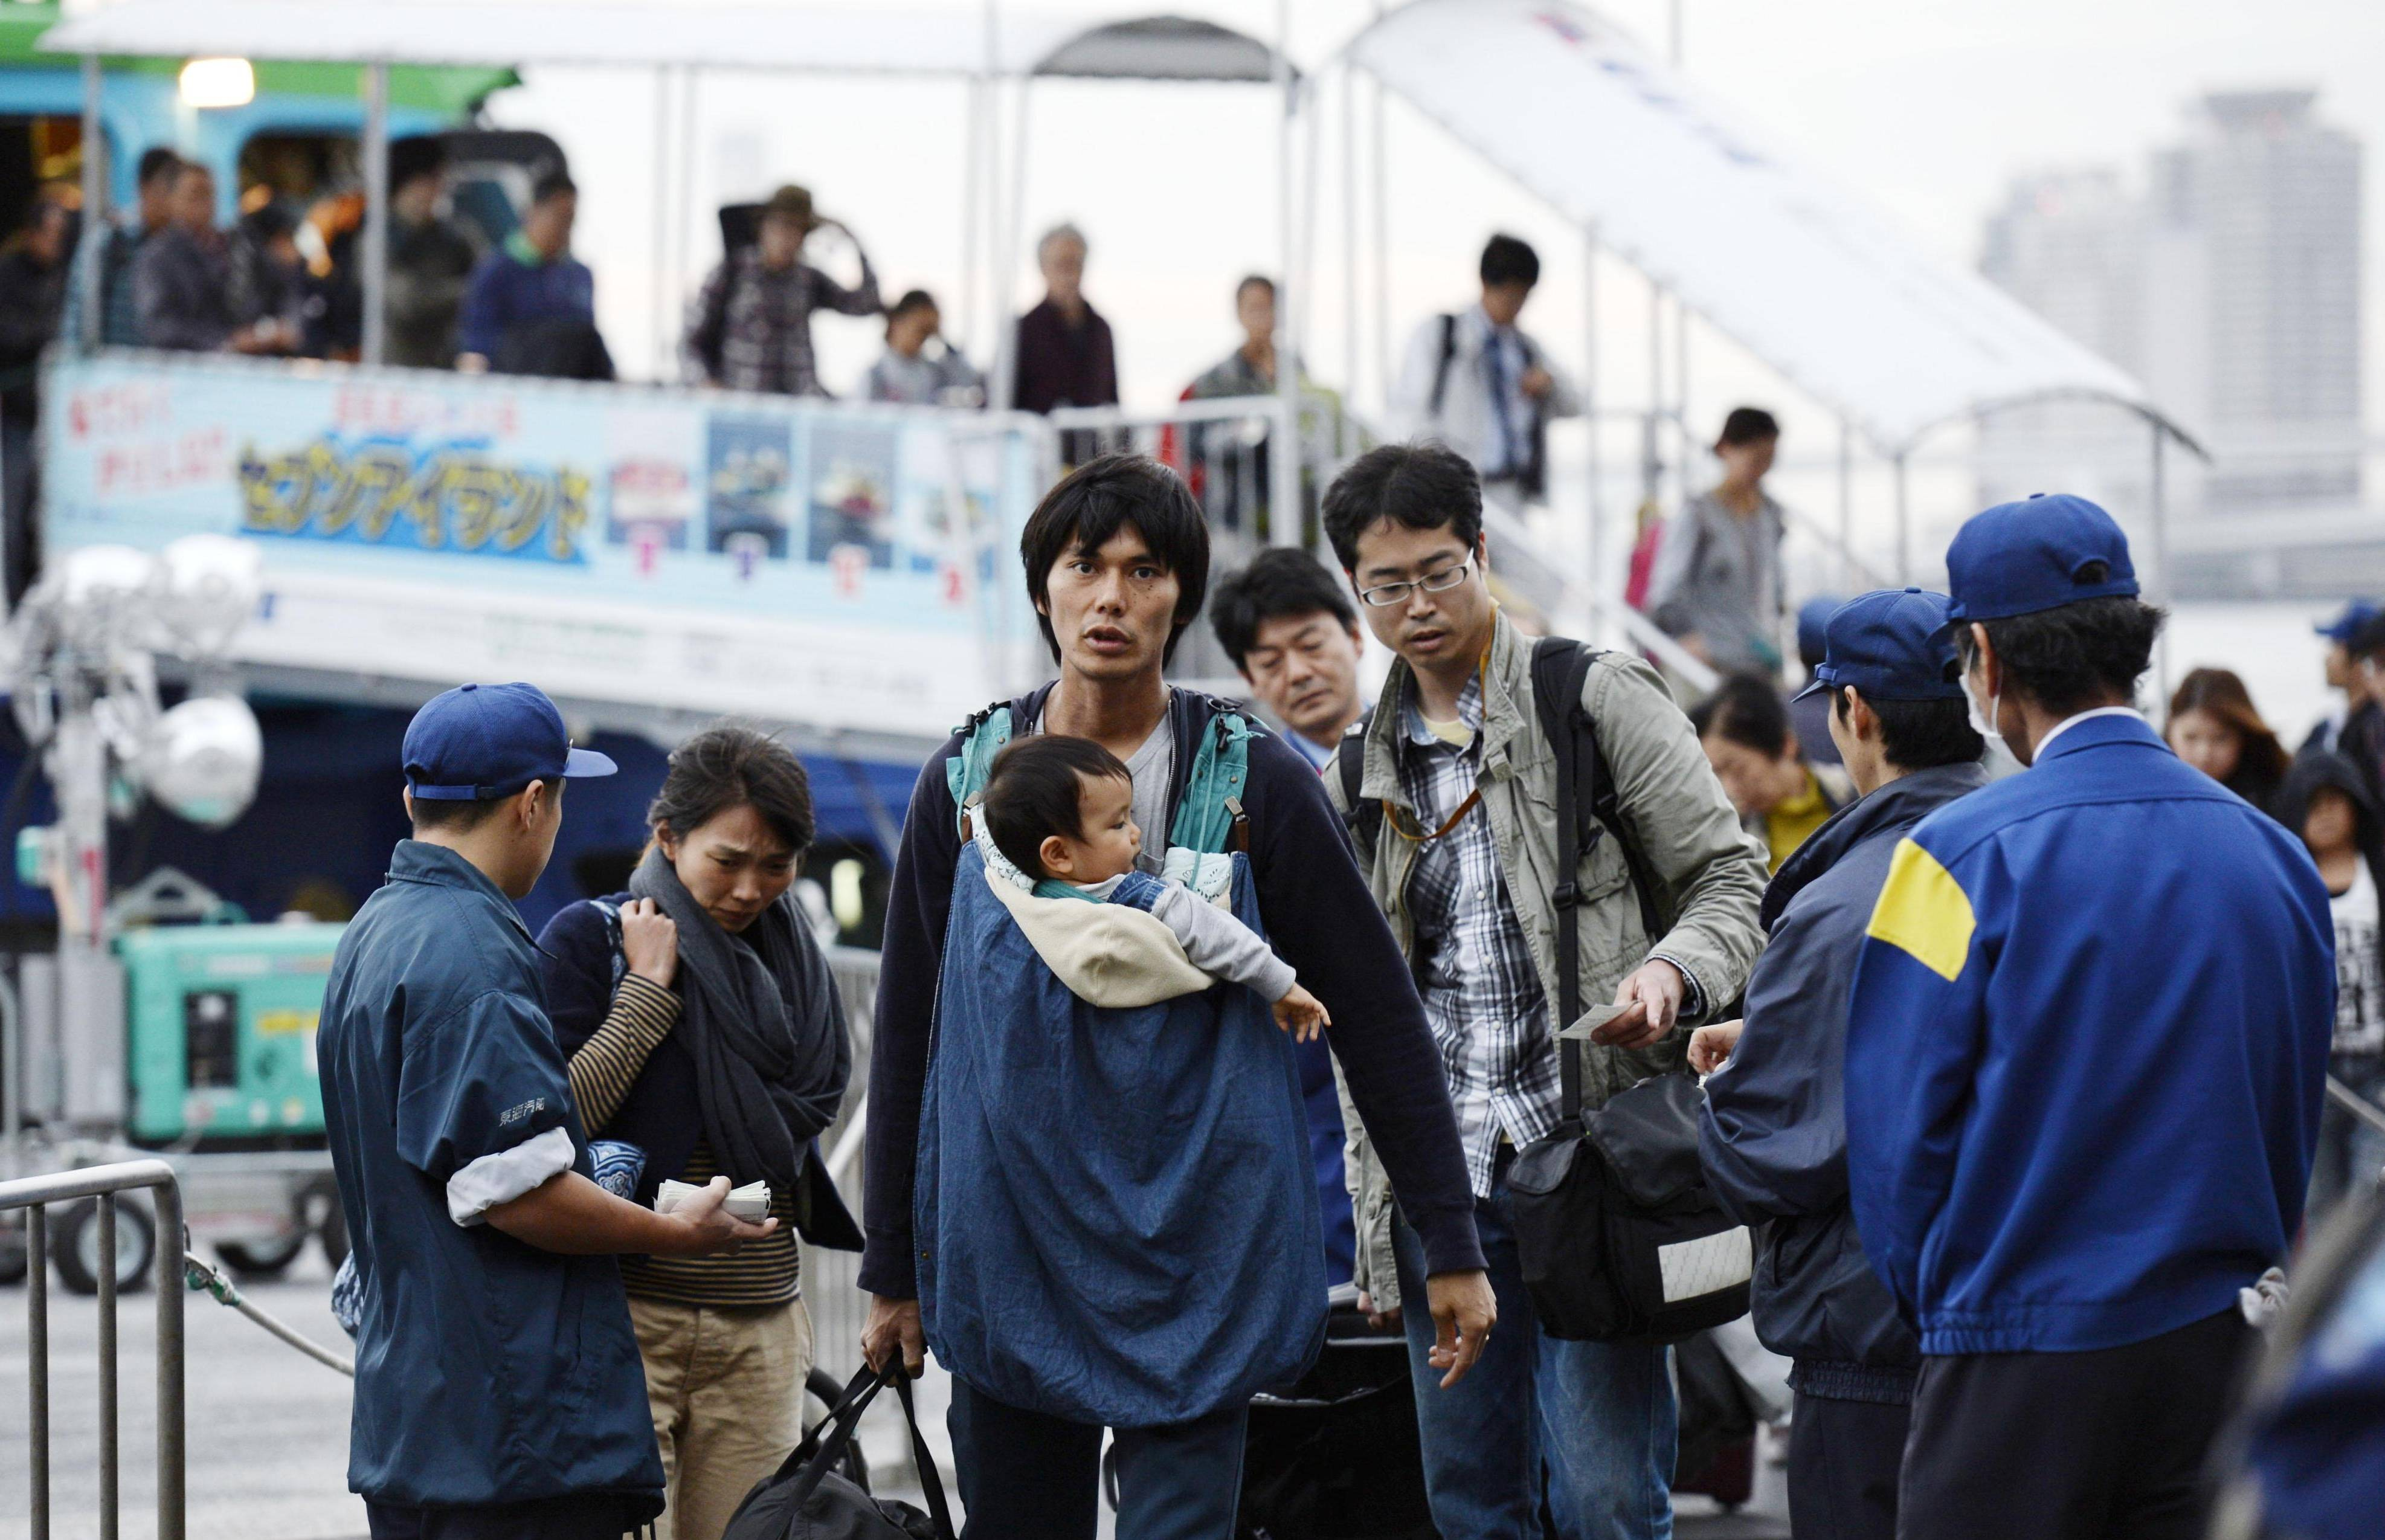 Out of harm's way: Residents of Izu-Oshima Island, who evacuated in the face of the second typhoon expected to hit the island in a little more than a week, arrive at the Takeshiba Passenger Ship Terminal in Tokyo on Tuesday.  | KYODO